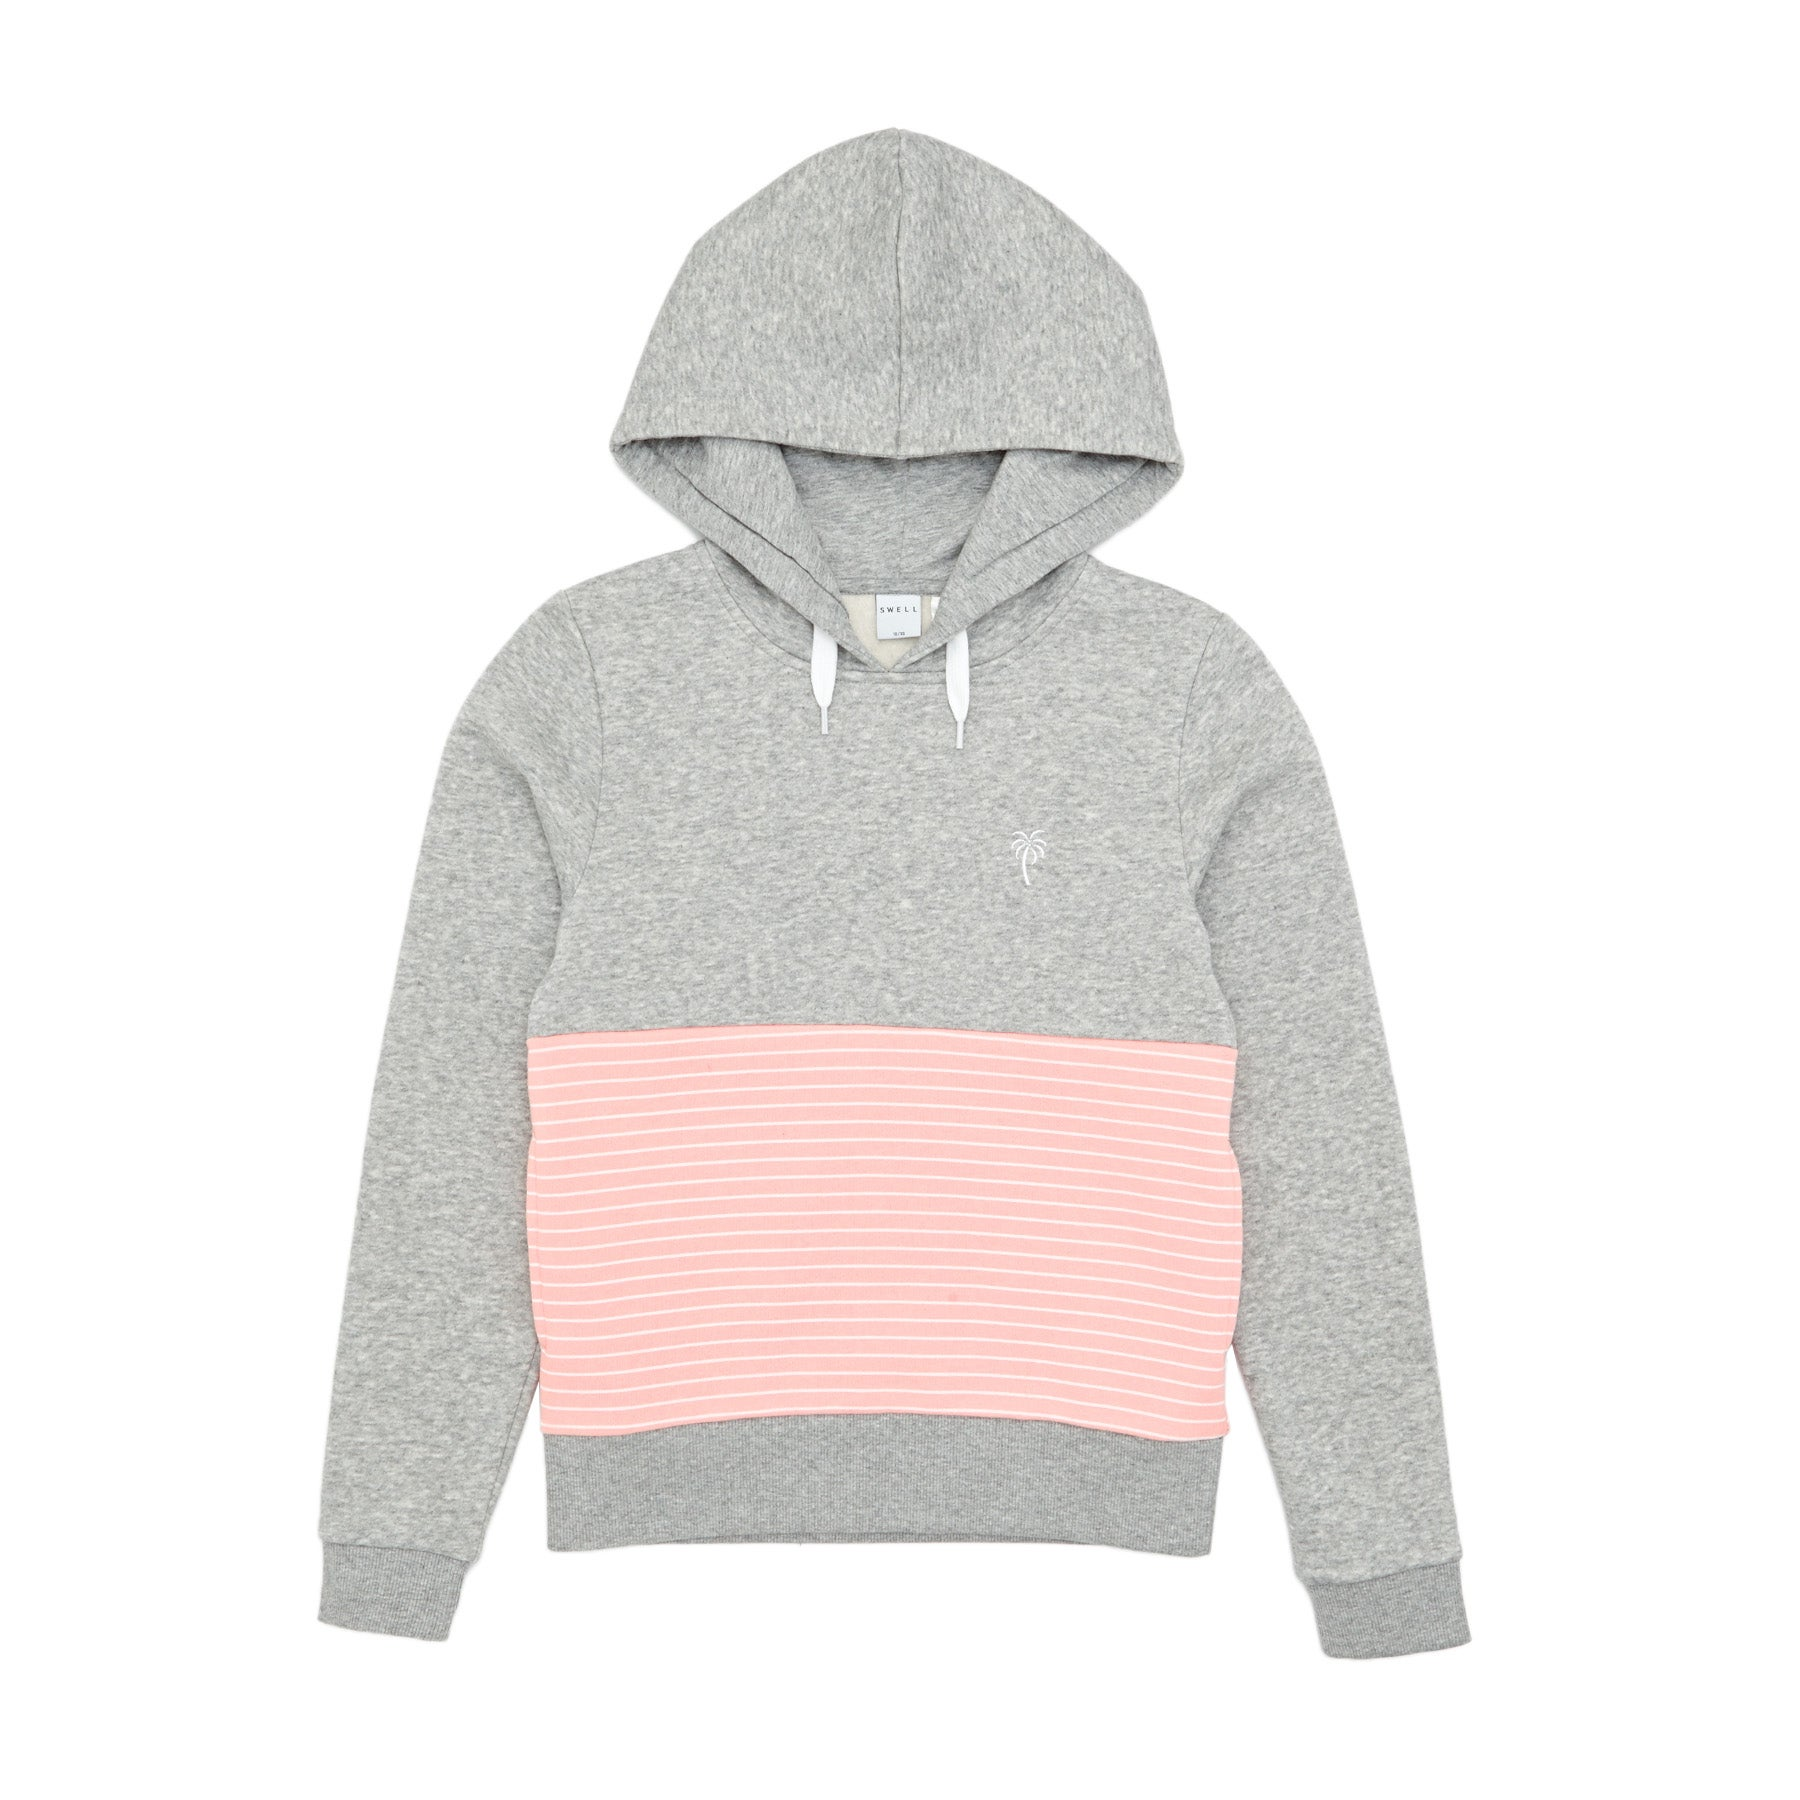 SWELL Kellie Girls Pullover Hoody - Pink Marle